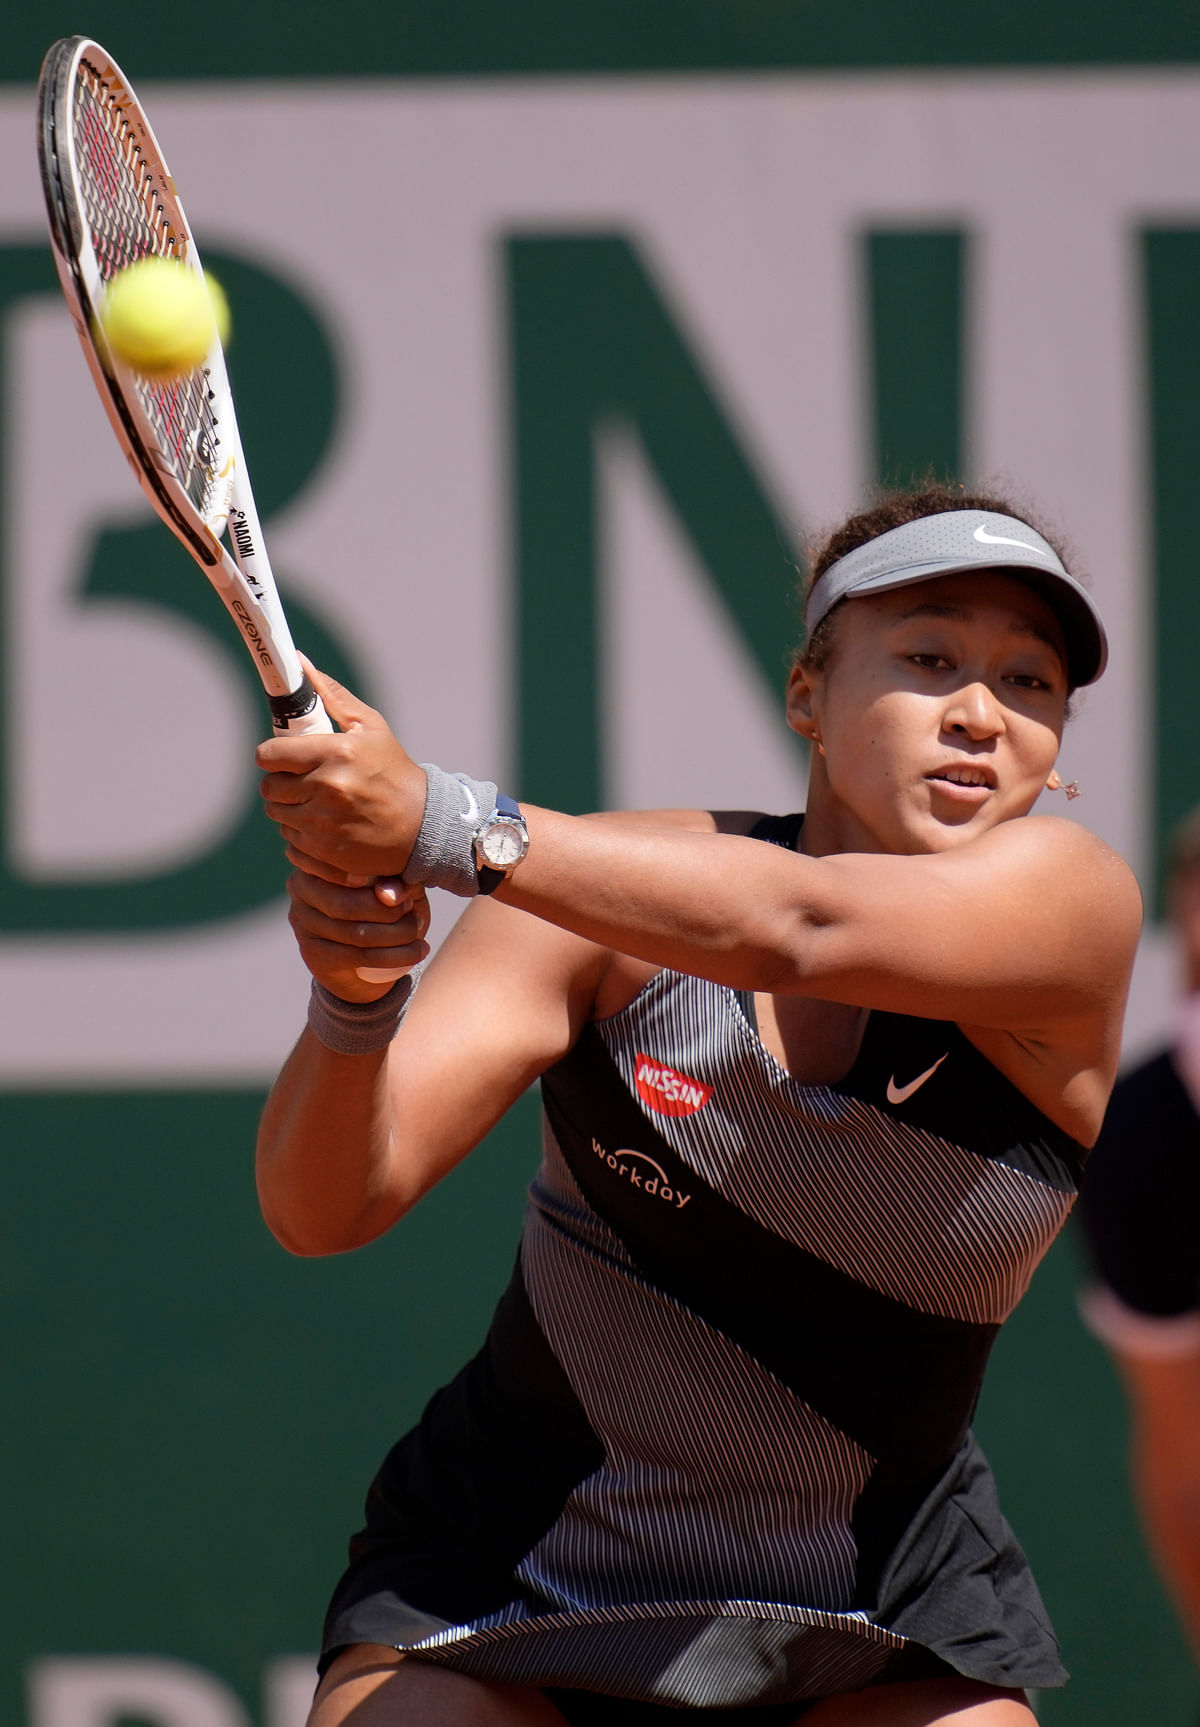 Naomi Osaka returns the ball to Romania's Patricia Maria Tig during their first round match of the French open tennis tournament at the Roland Garros stadium Sunday, May 30, 2021 in Paris.